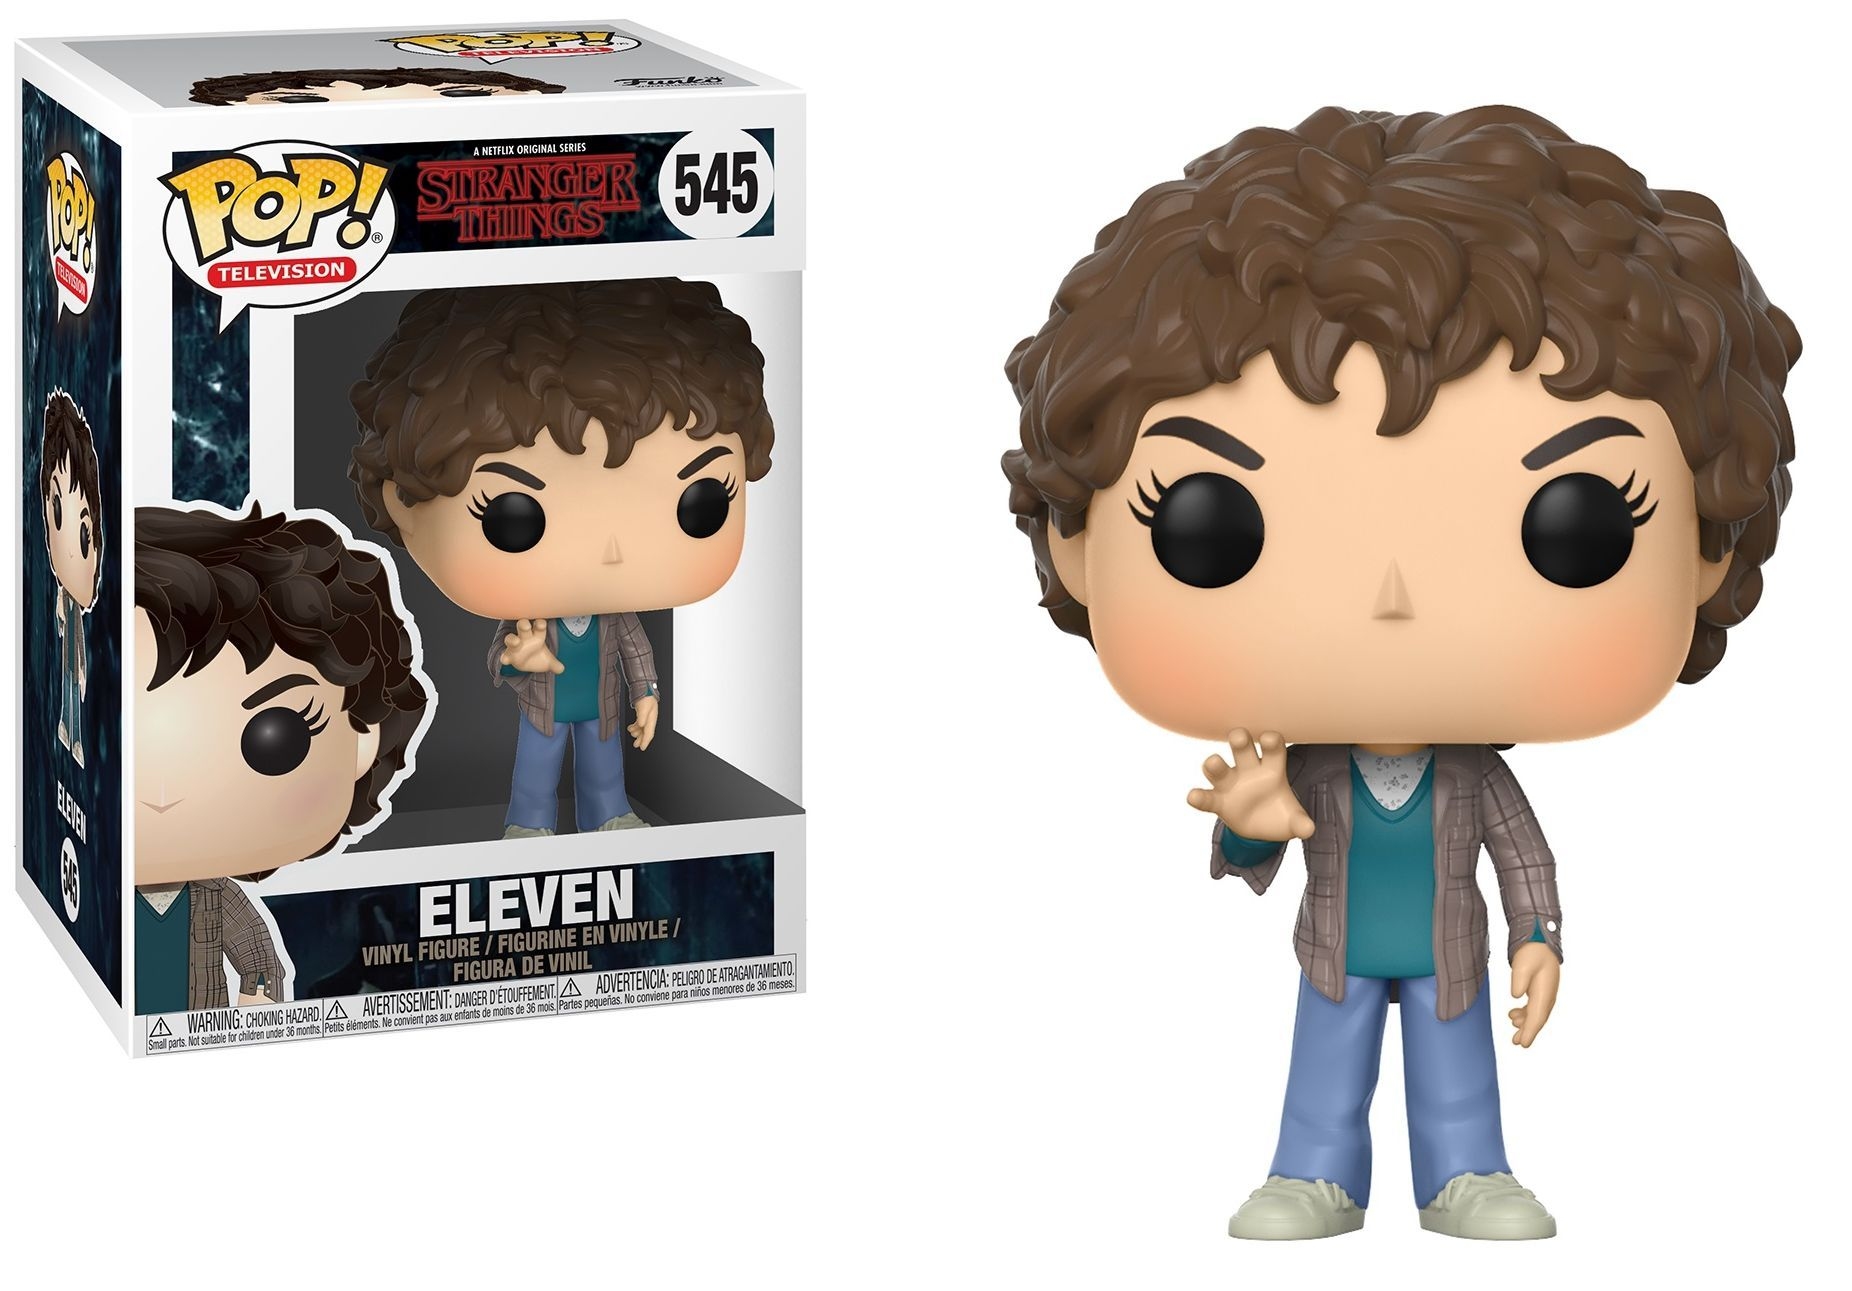 Фигура Funko Pop! Television: Stranger Things - Eleven, #545 - 2